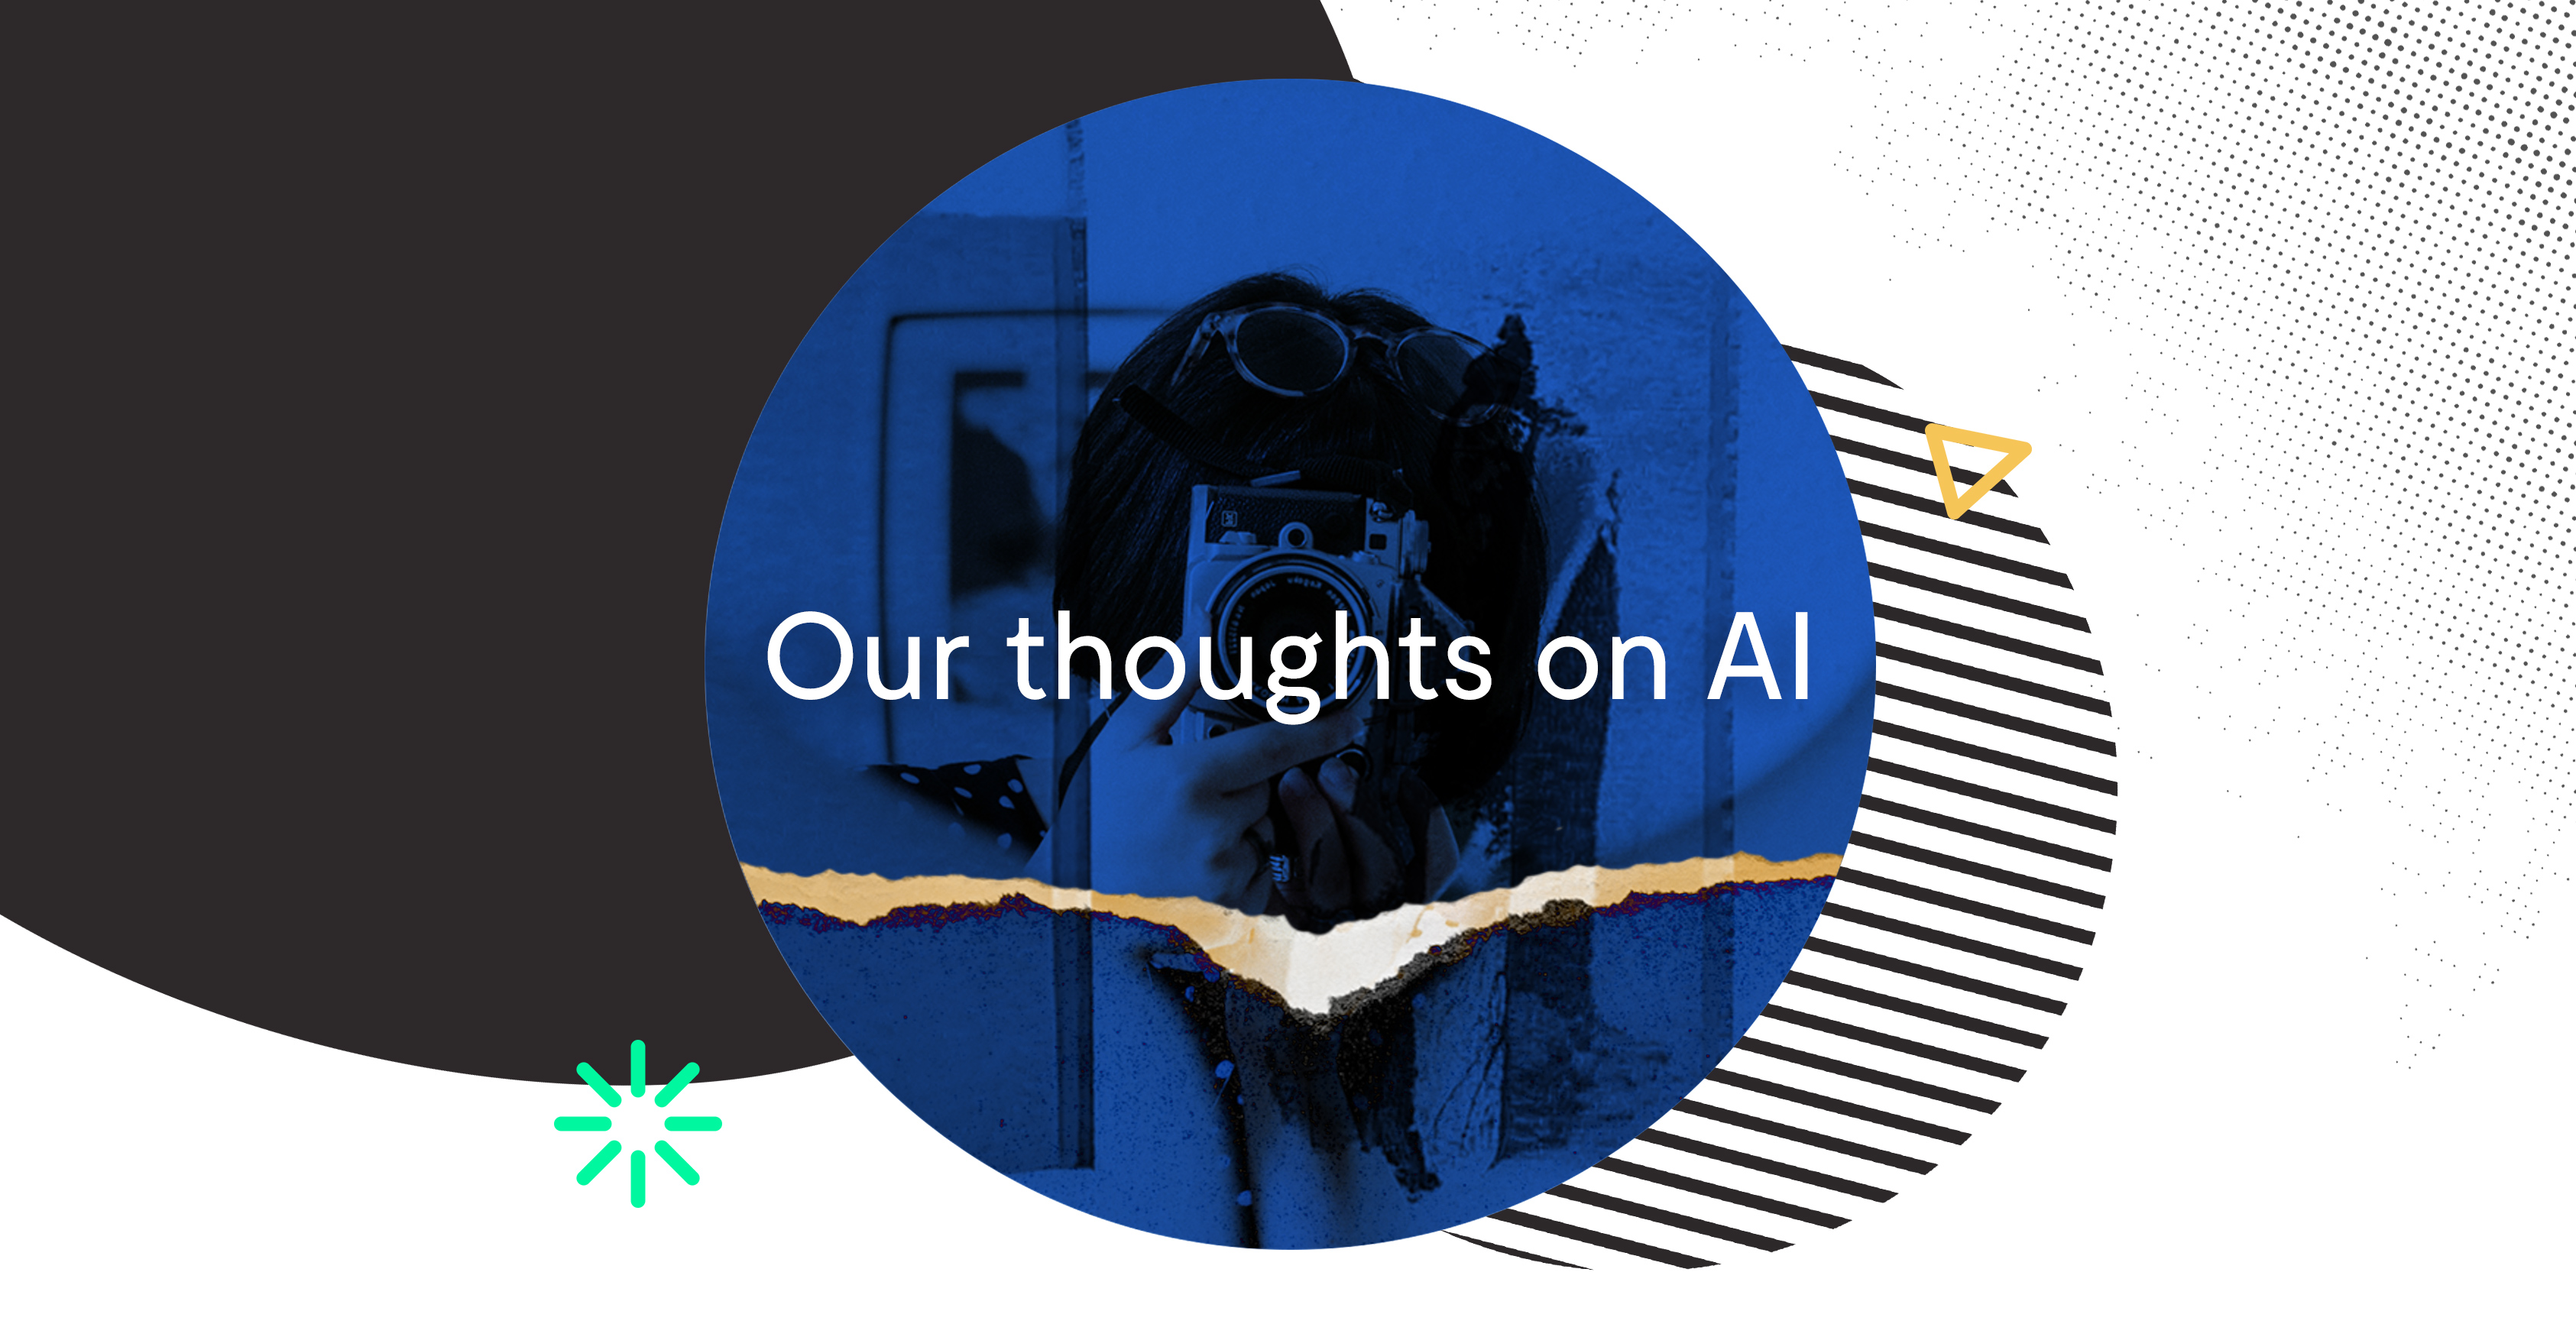 Our thoughts on AI